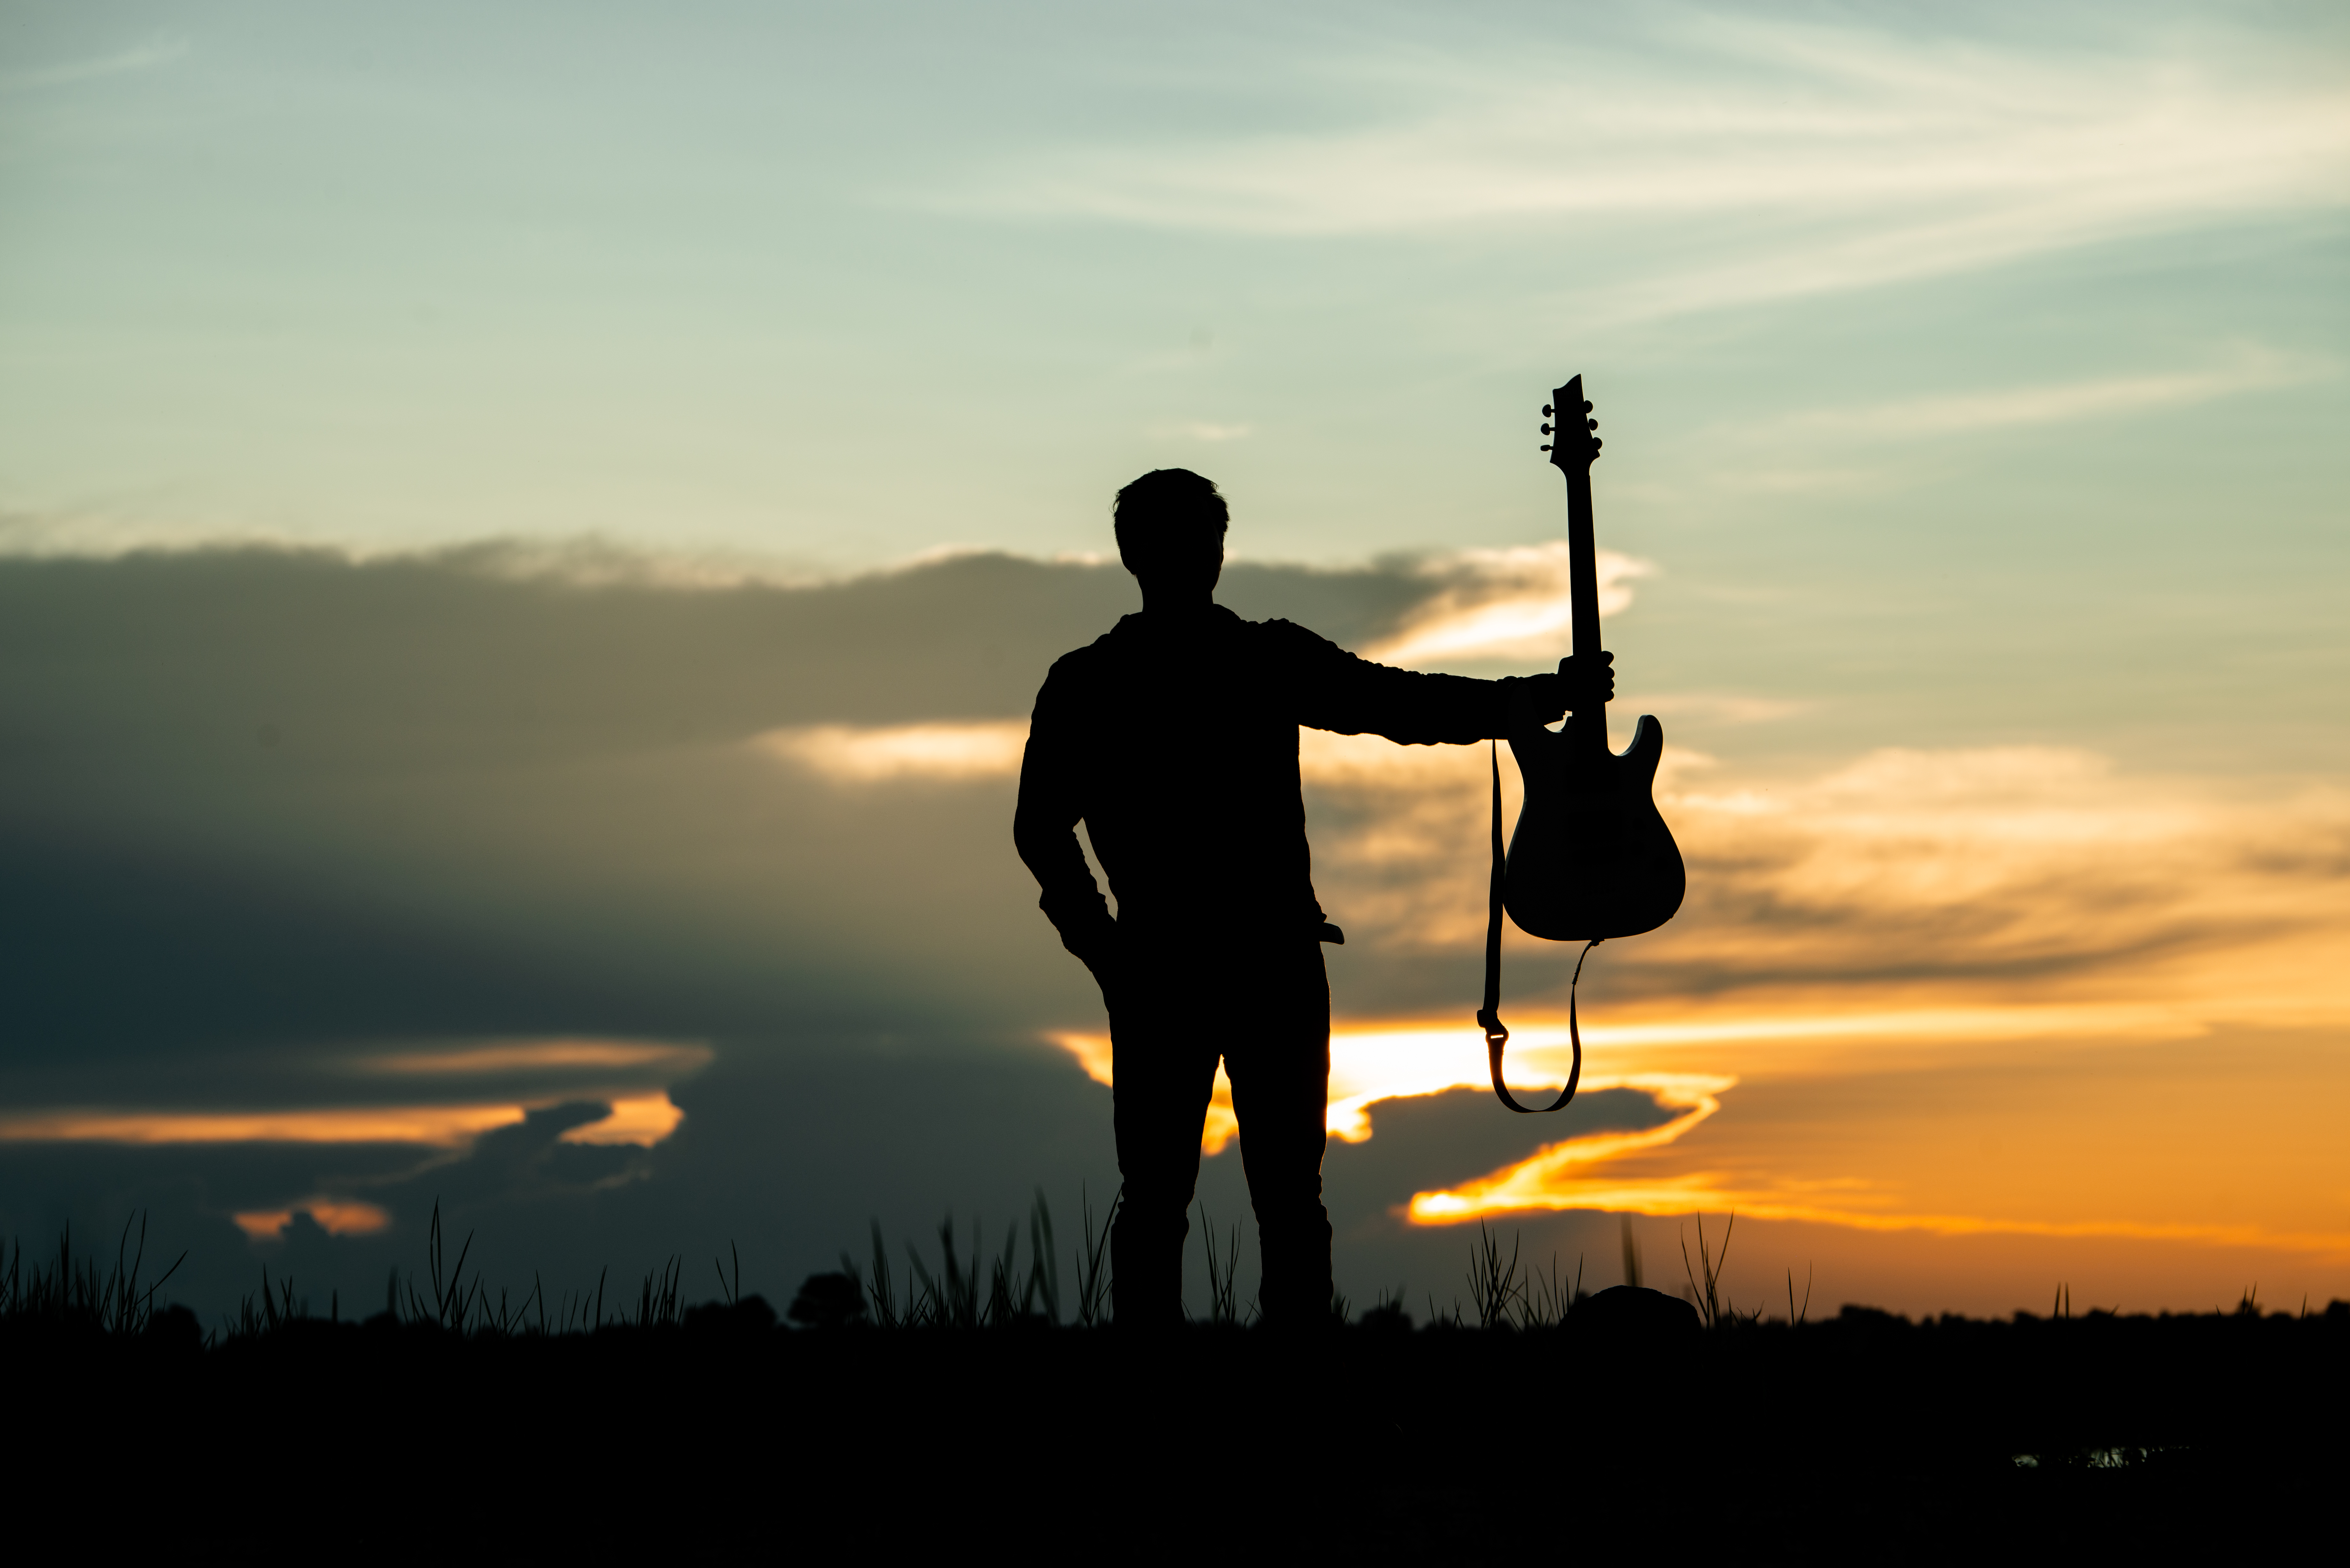 Silhouette of musician with guitar